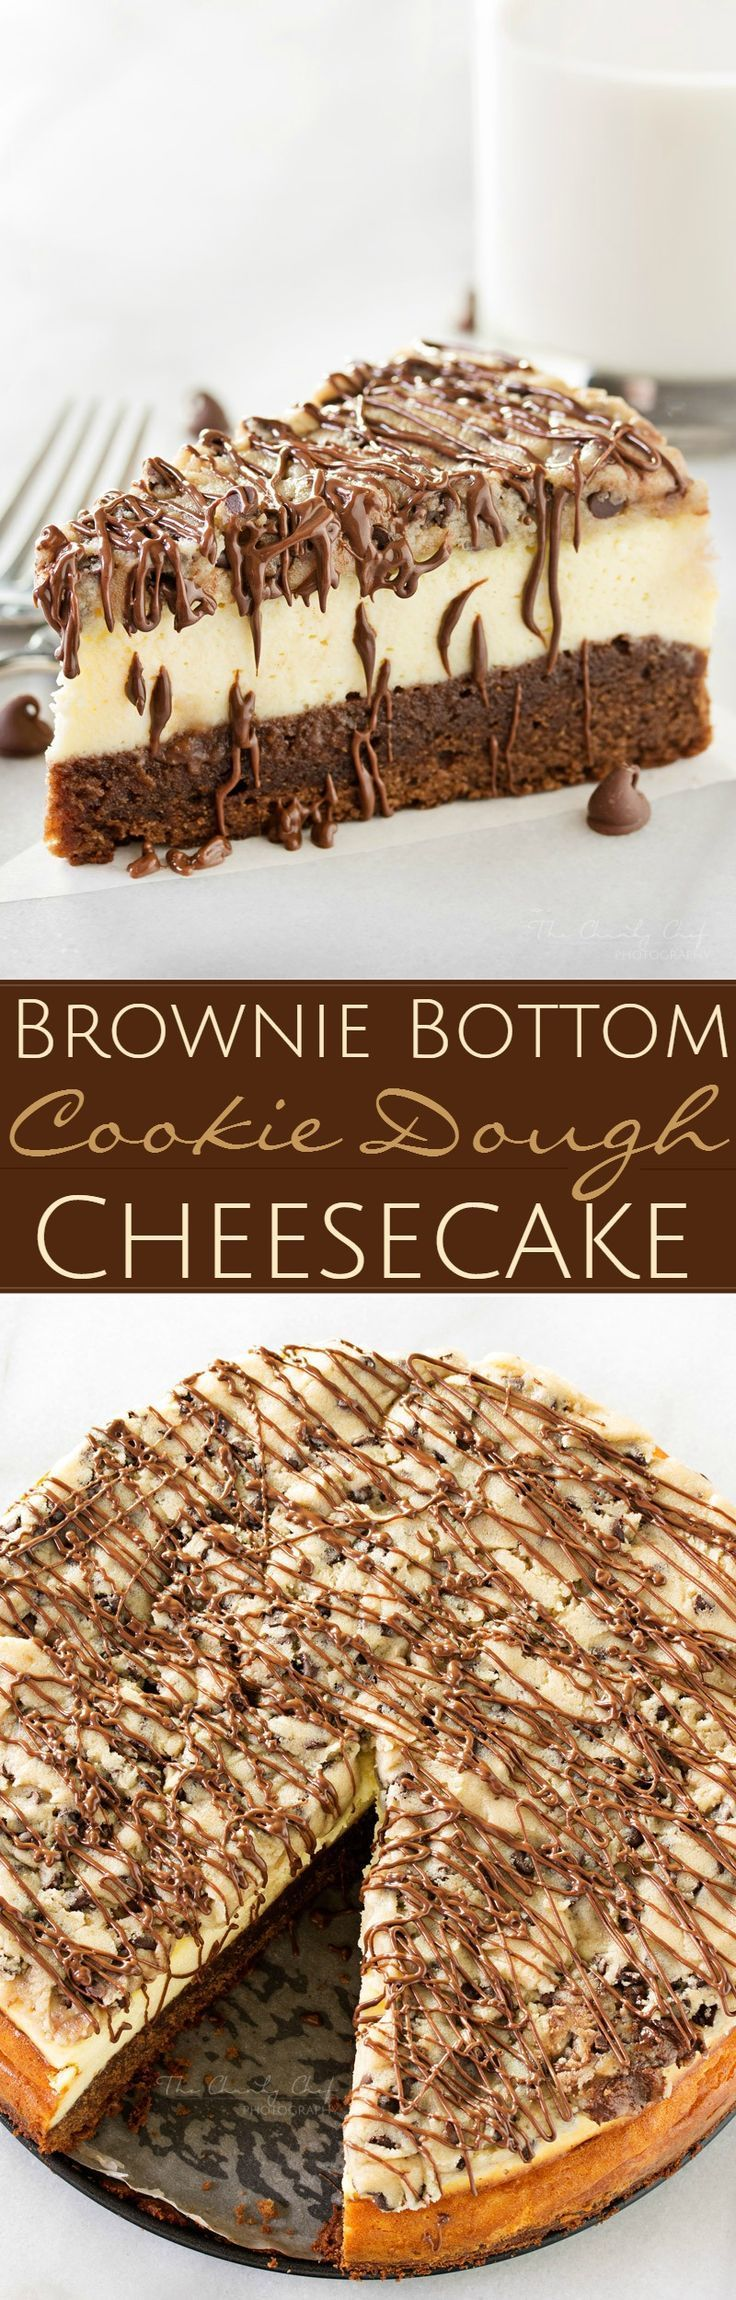 Brownie-Bottom-Cookie-Dough-Cheesecake This impressive, yet super easy, brownie bottom cookie dough cheesecake looks as fancy as any dessert you've had from a restaurant! The ULTIMATE cheesecake for the ULTIMATE dessert lover! http://thechunkychef.com